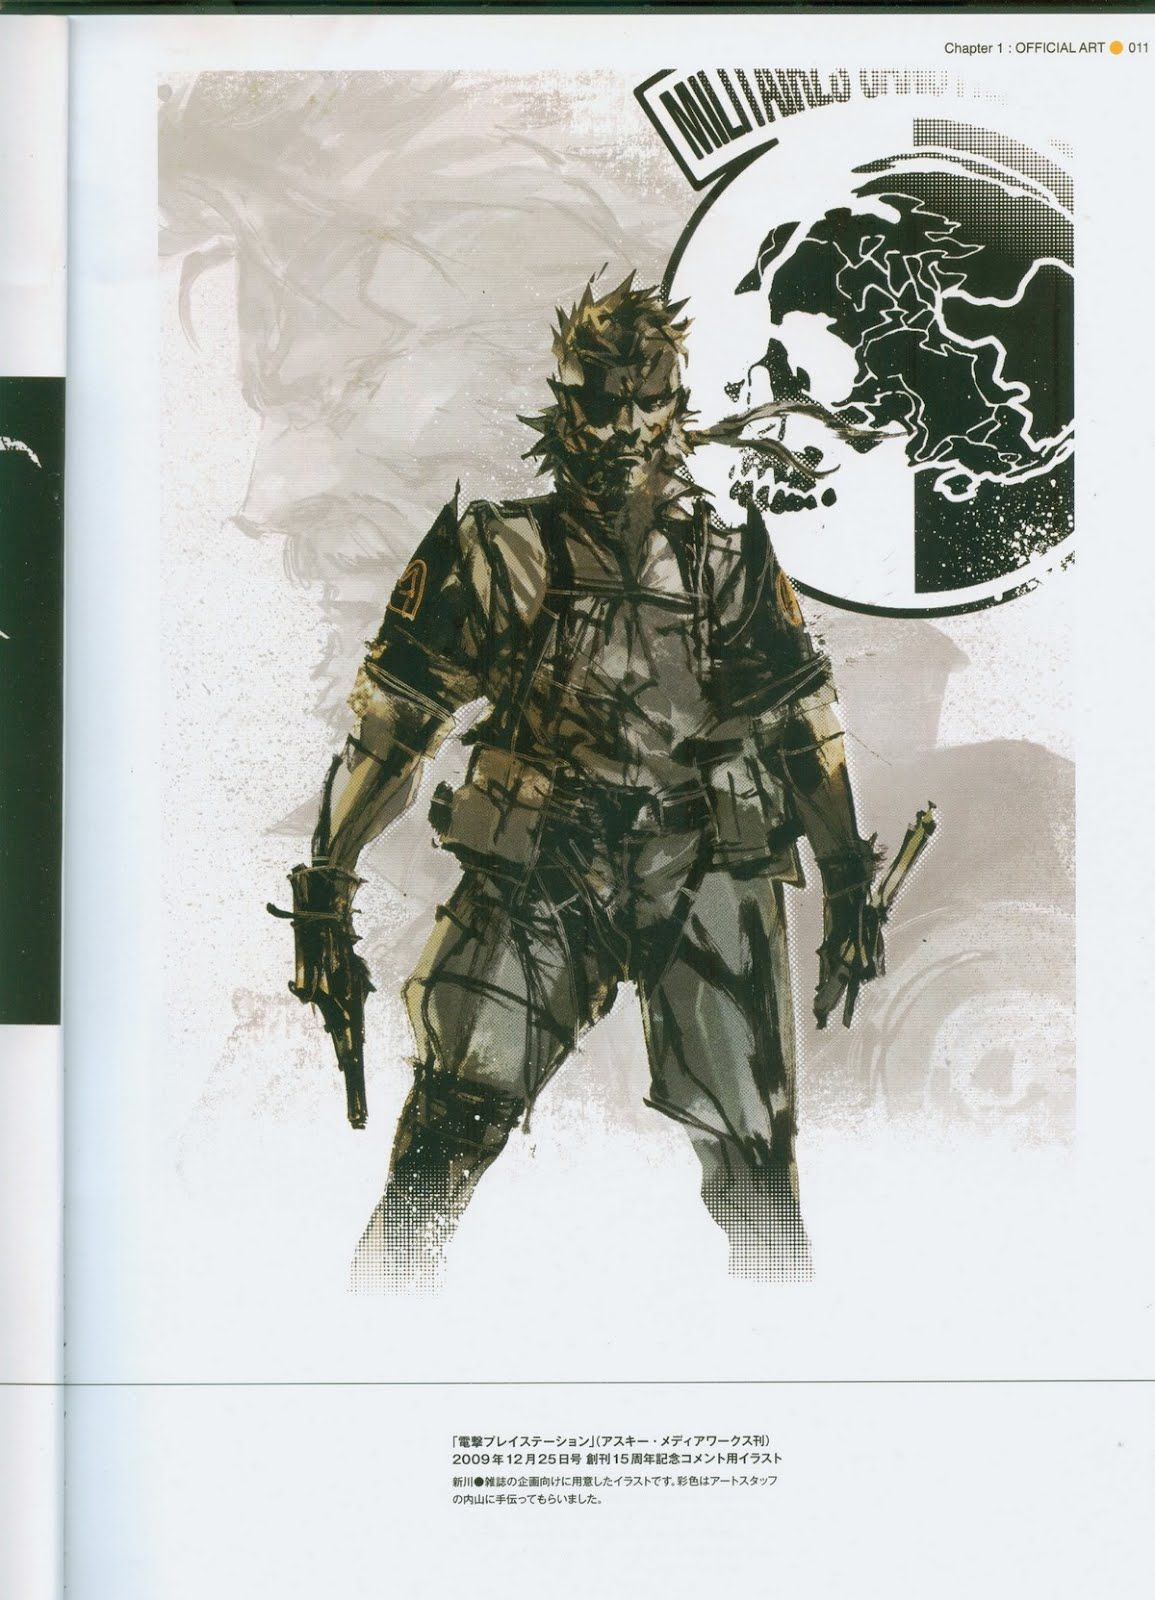 Pin By Tyler Corkron On Metal Gear Solid A Hideo Kojima Game Metal Gear Solid Metal Gear Metal Gear Rising